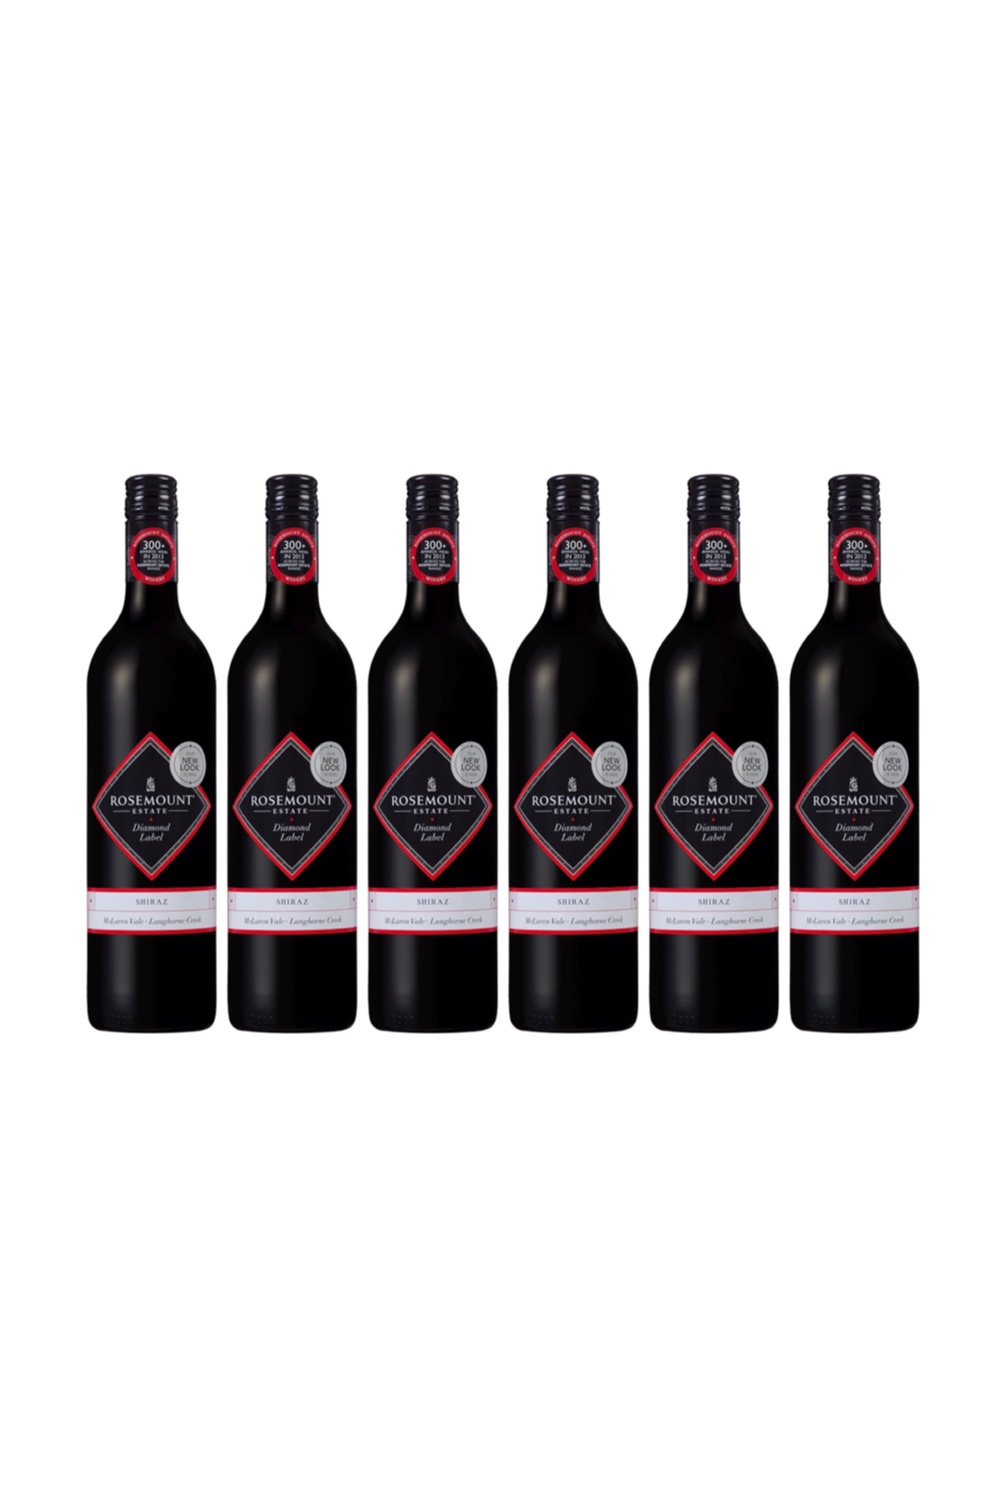 1 Case of Rosemount Diamond Label Shiraz (6 bottles)with 3 FREE Bottles of KWIRK BELGIUM Craft Beer worth $13.50!